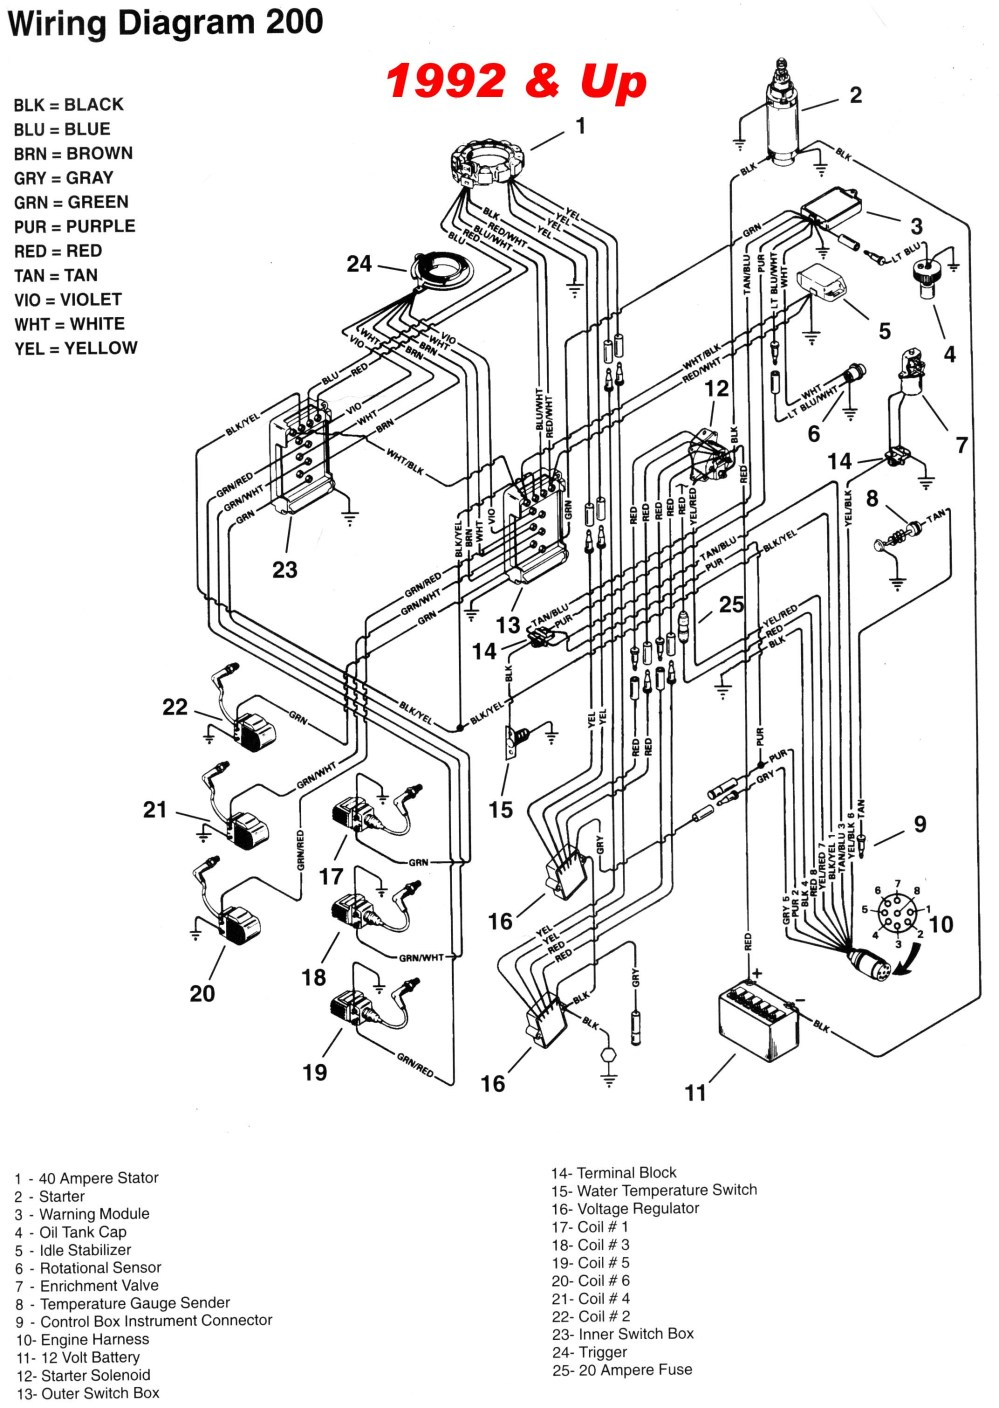 medium resolution of electrical system wiring diagram for 92up fishing motor